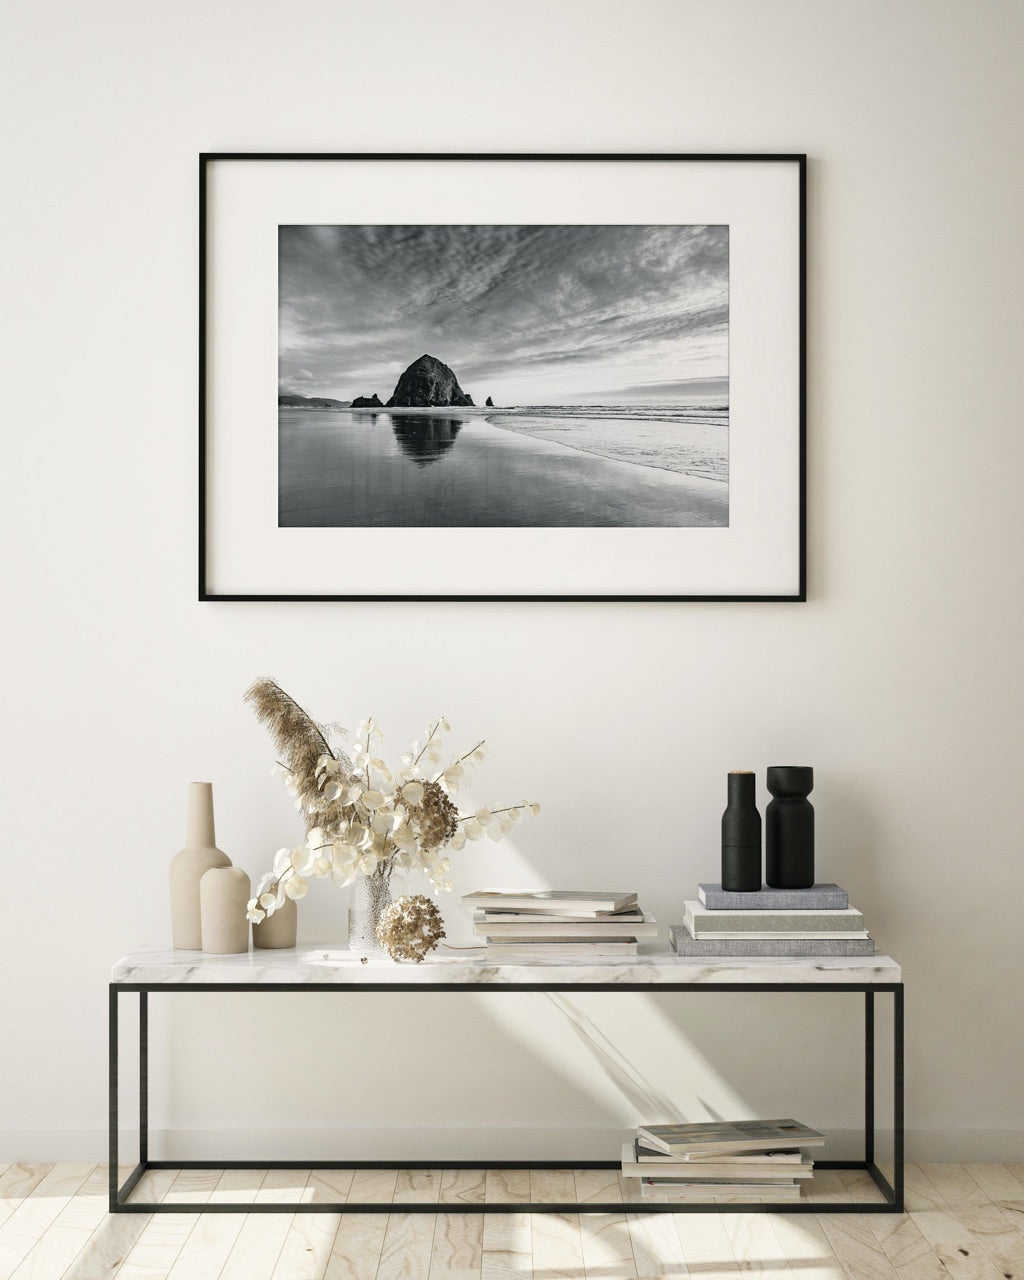 Modern entryway with a large framed beach photograph